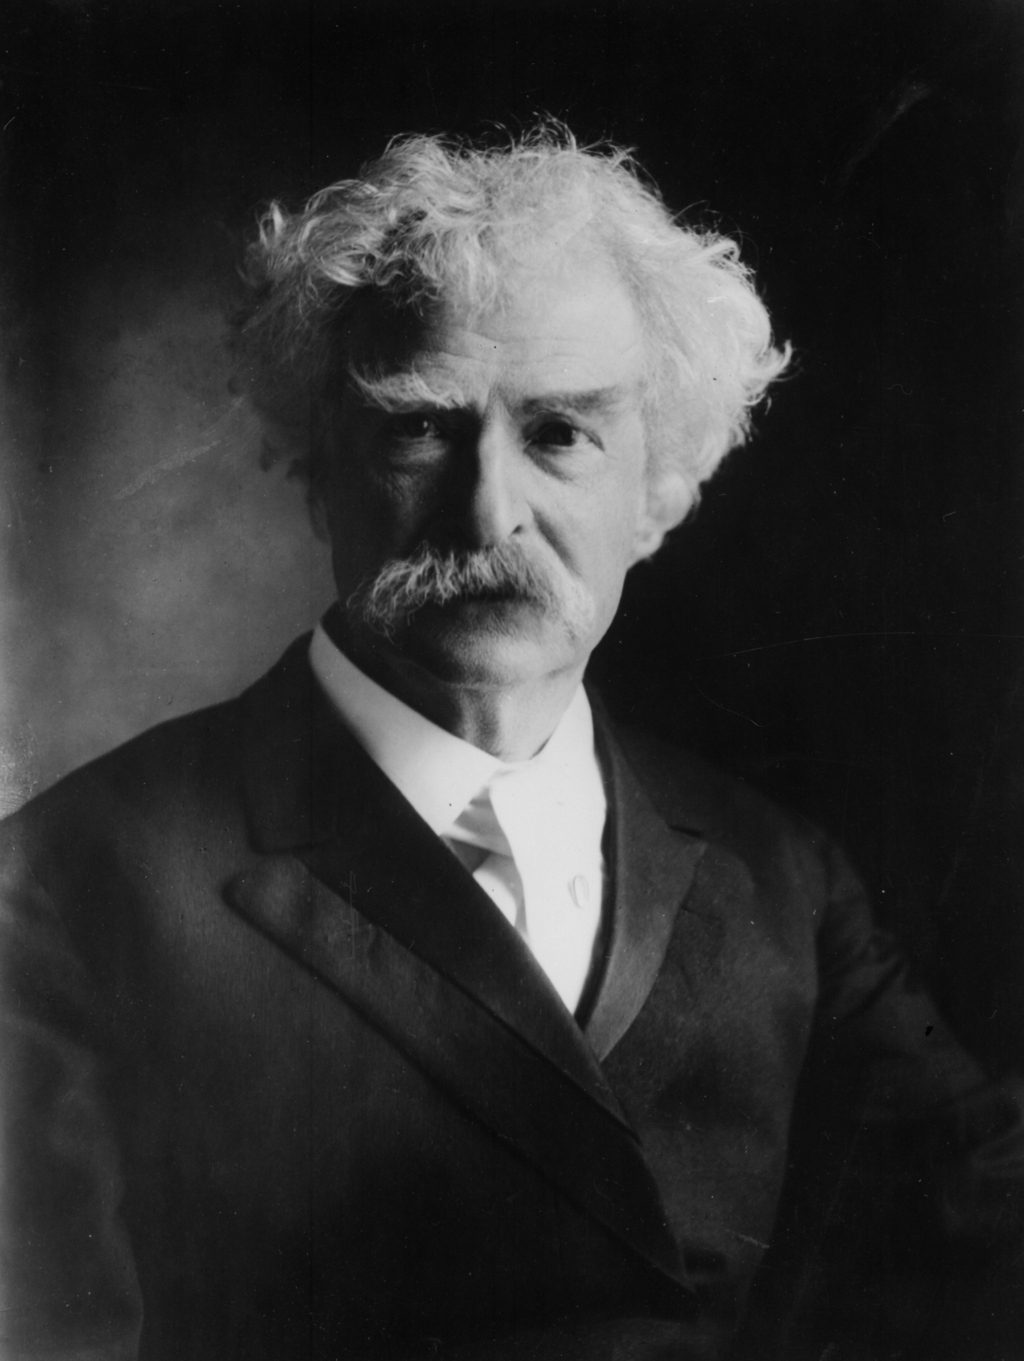 thesis on mark twain Mark twain was born samuel langhorne clemens on november 30, 1835 in florida, missouri he was the sixth child of john marshall clemens, a judge and jane lampton who had no idea they had become parents to what would be one of the most famous personalities in america.